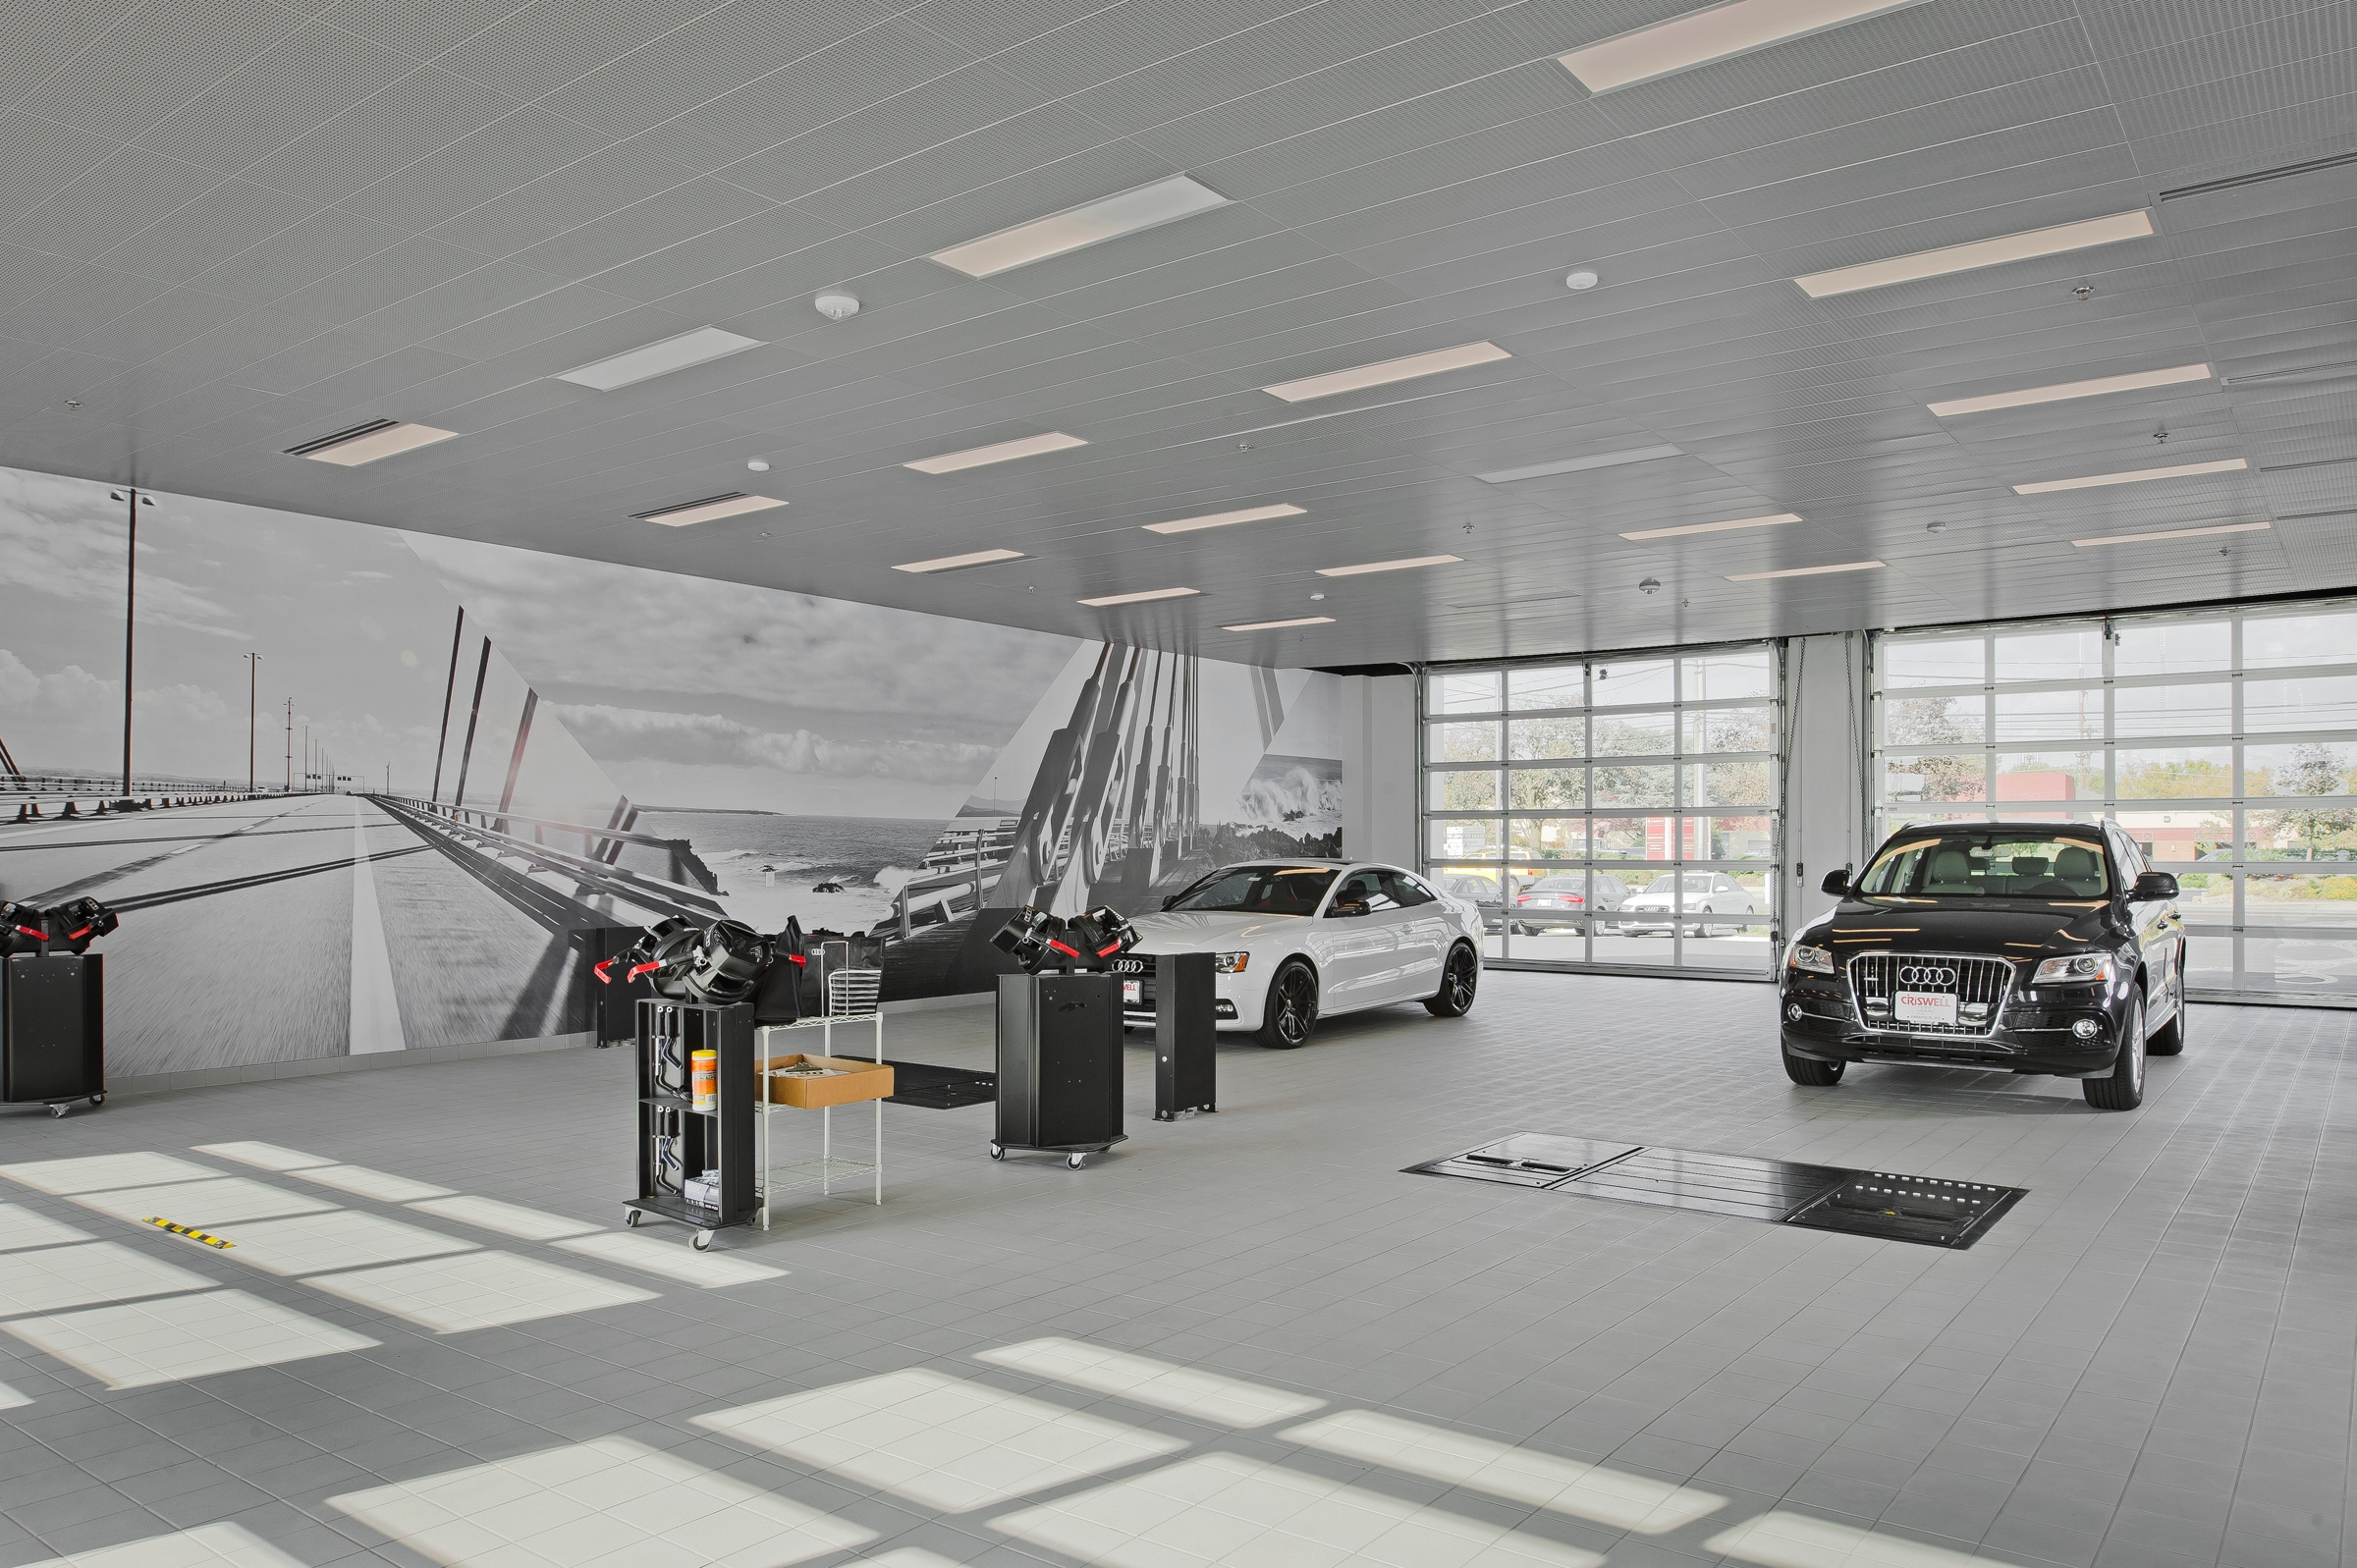 Audi Annapolis New Audi Dealership In Annapolis MD - Audi dealership washington